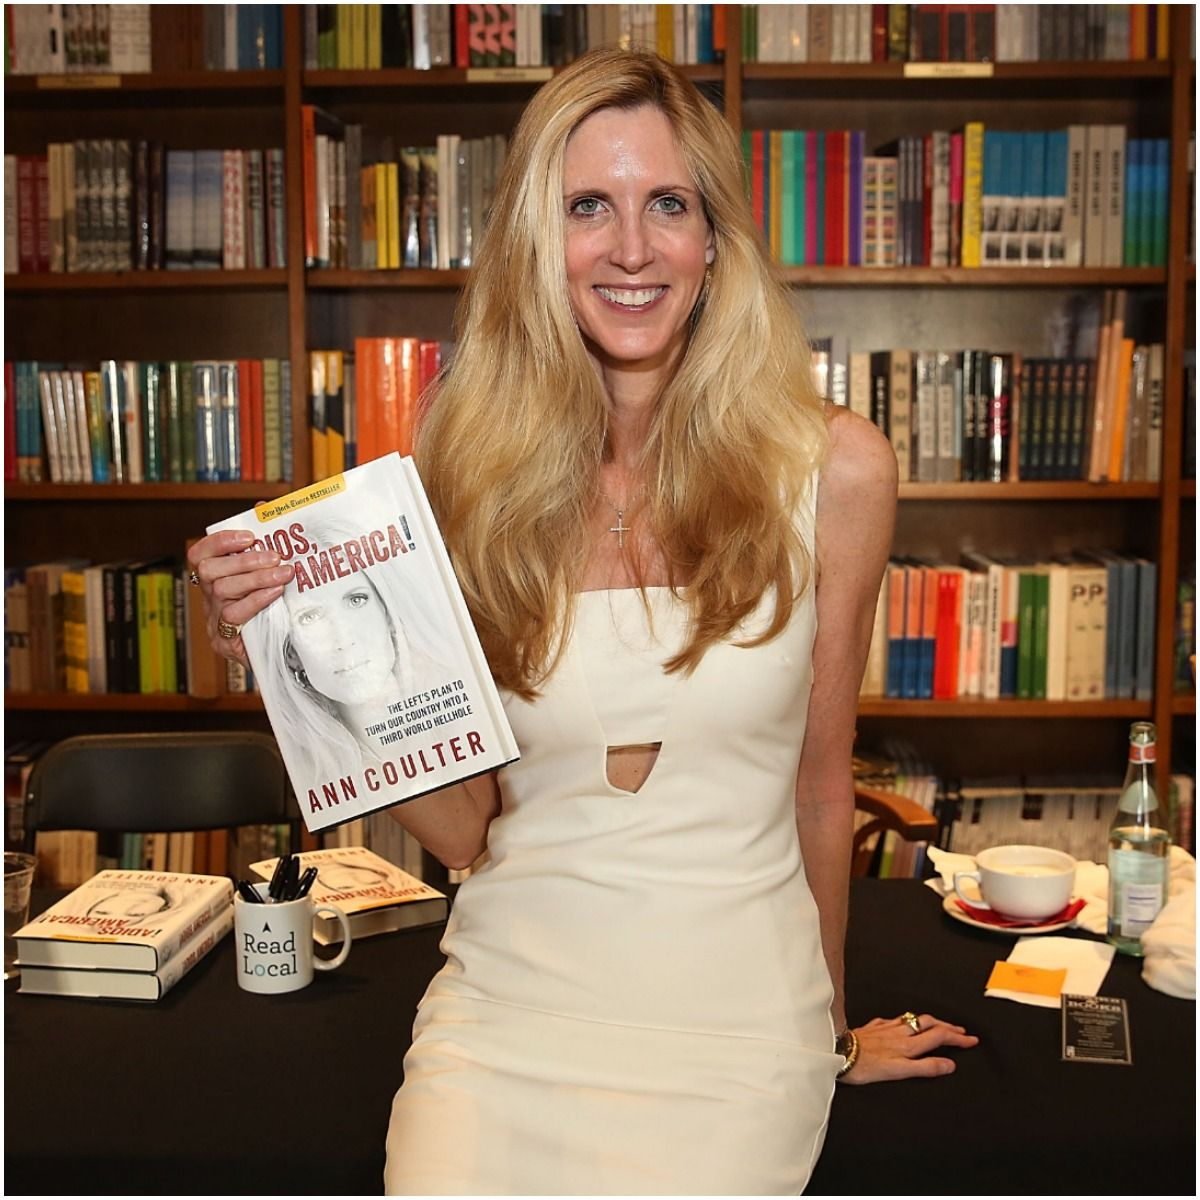 Ann Coulter Net Worth